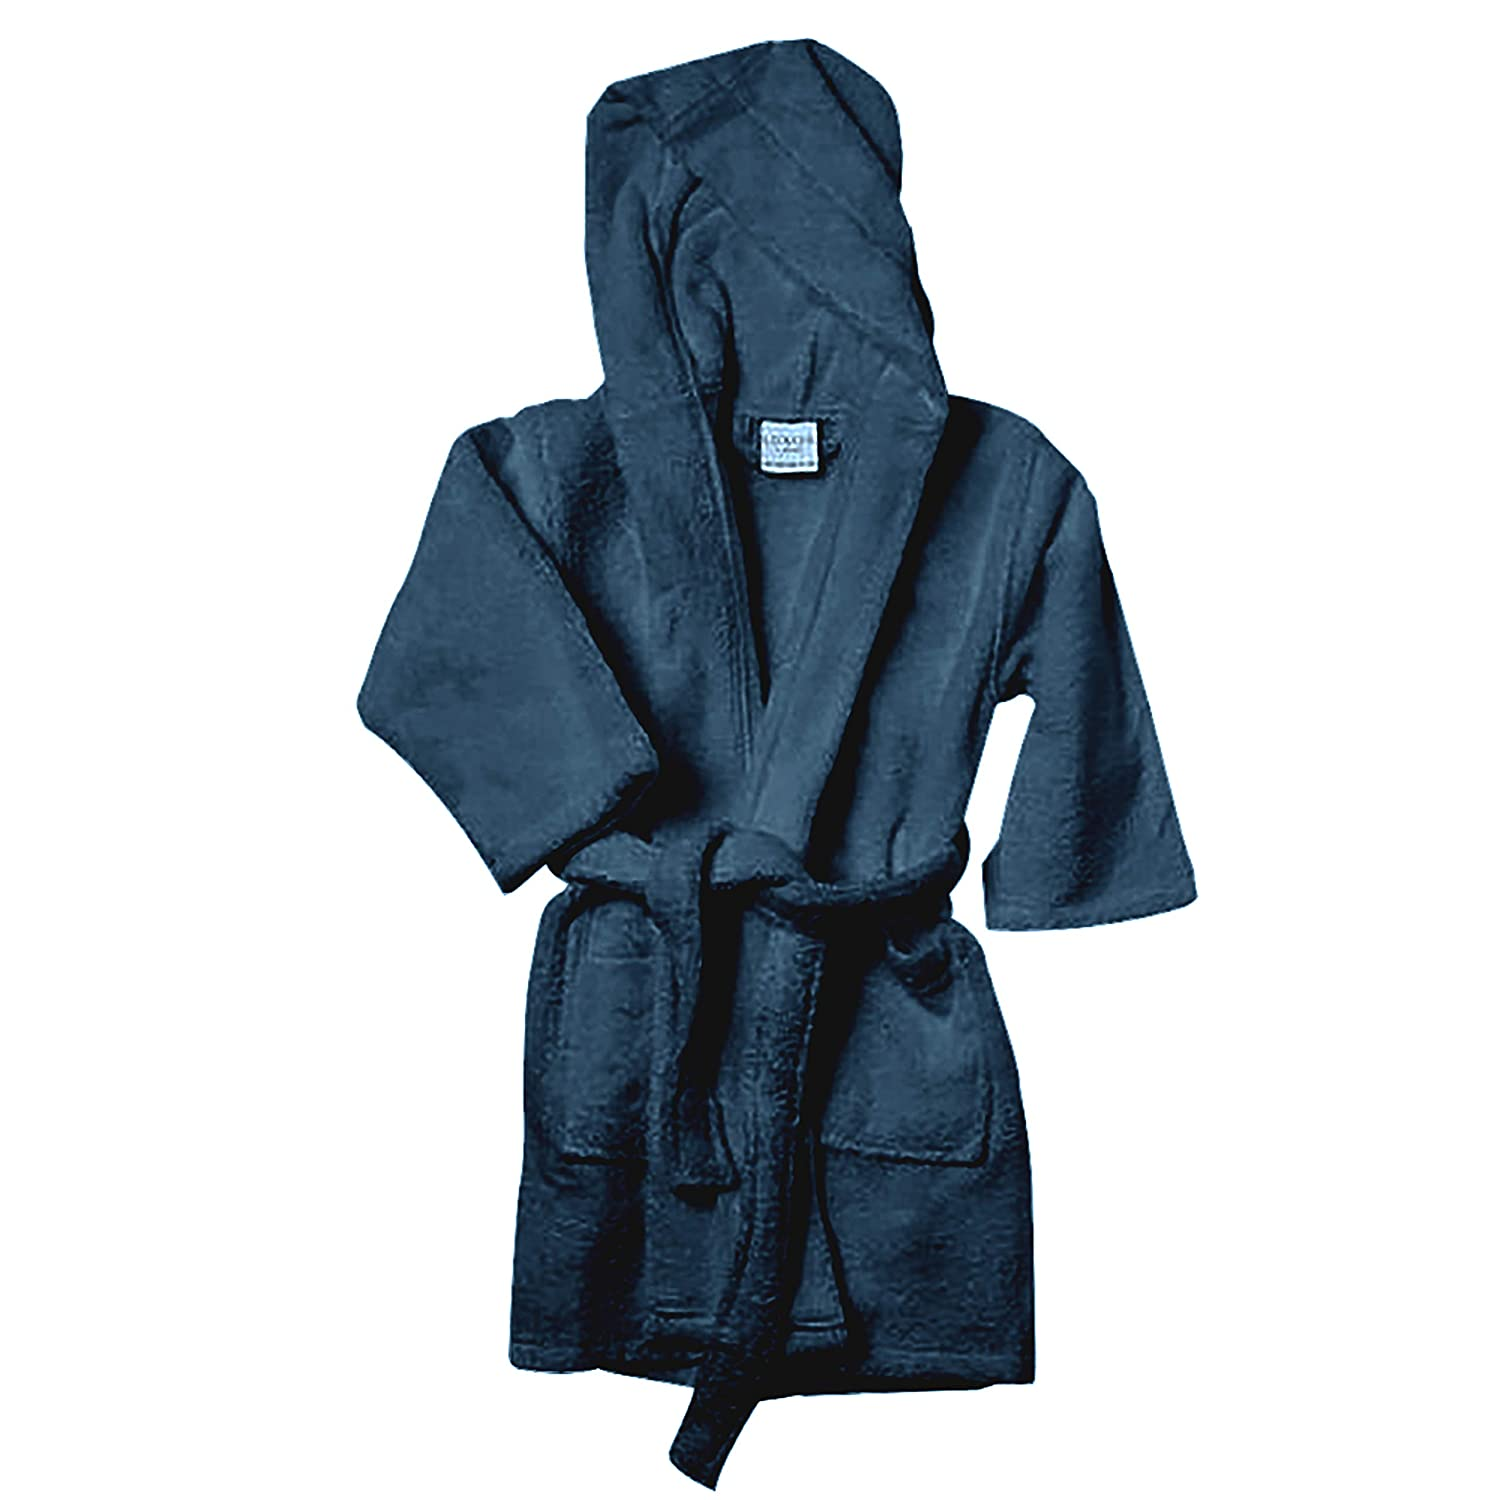 Luxor Linens Kids Robe - Luxury Hooded Bathrobe for Girls and Boys and 100% Egyptian Cotton (Navy, Large)